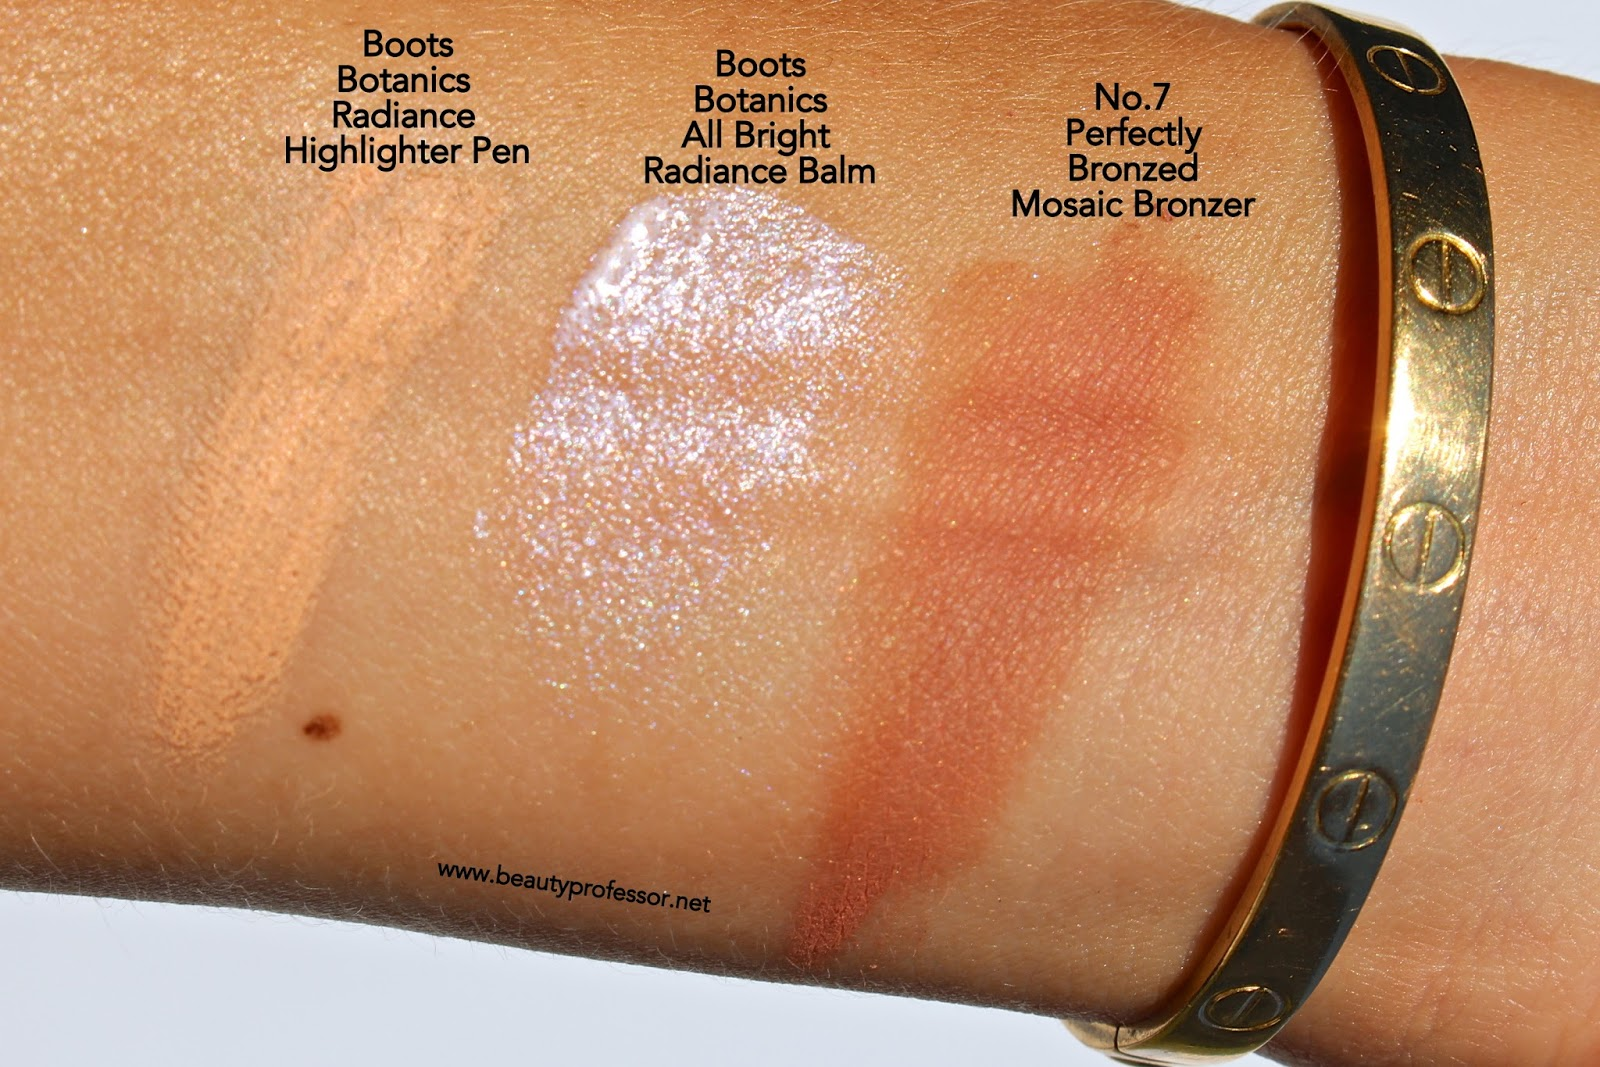 Superb Above: Swatches Of The Complexion Products In Direct Sunlight.